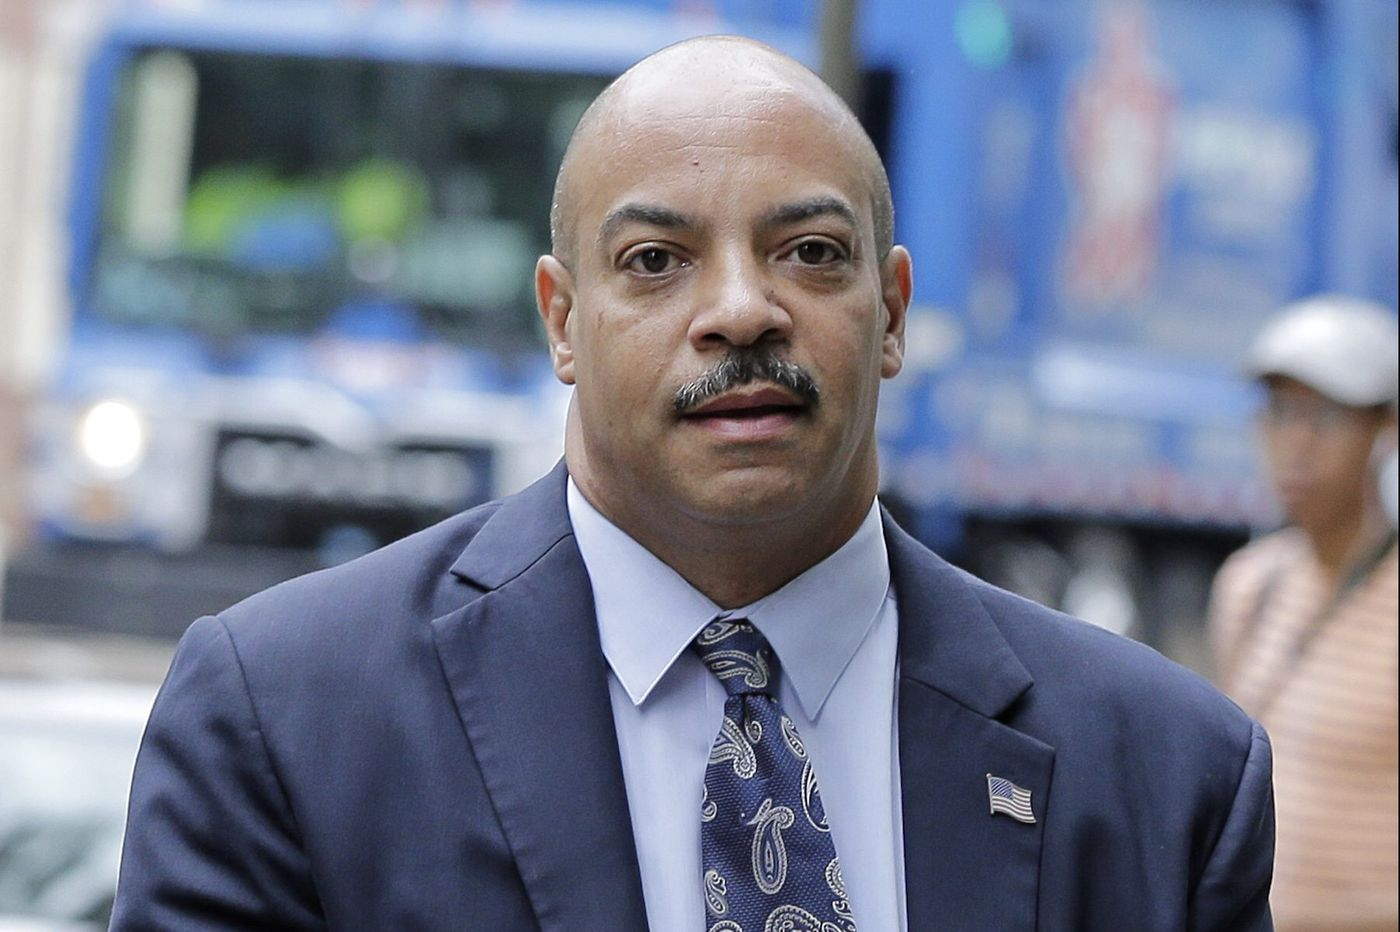 Former DA Seth Williams returns to Philly after federal prison stint in West Virginia